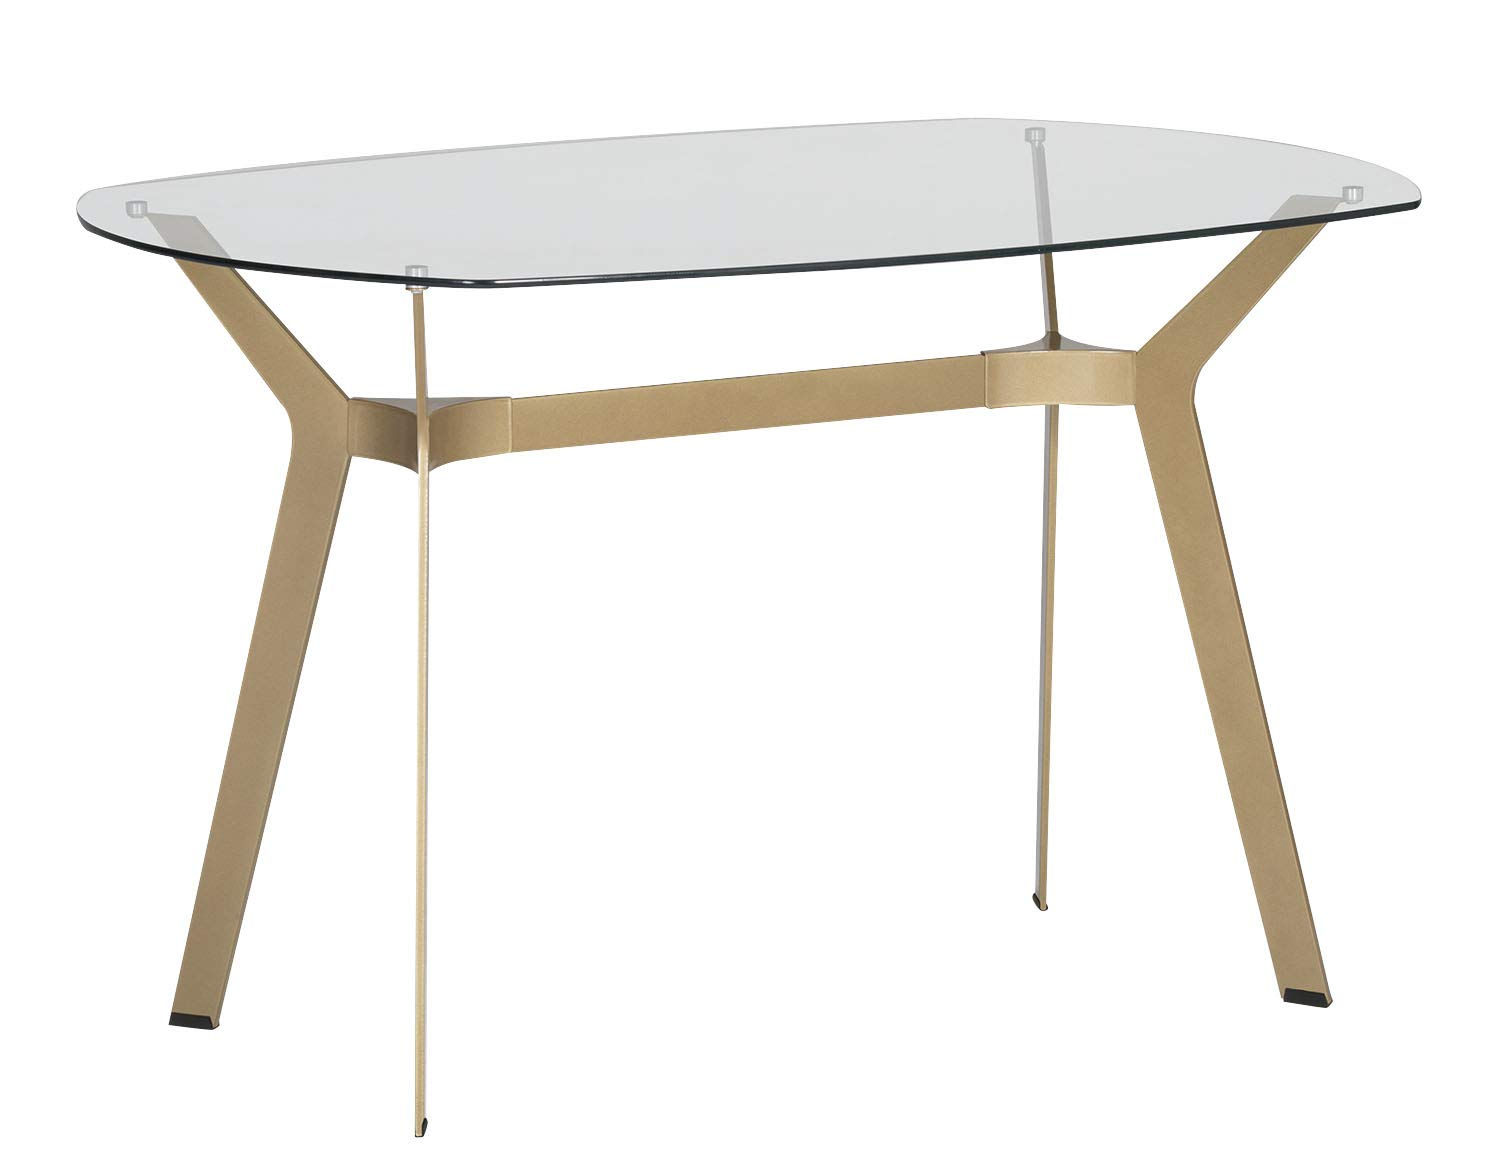 Outstanding Offex Home Office 60 Dining Table Desk Gold Clear Glass Download Free Architecture Designs Pushbritishbridgeorg